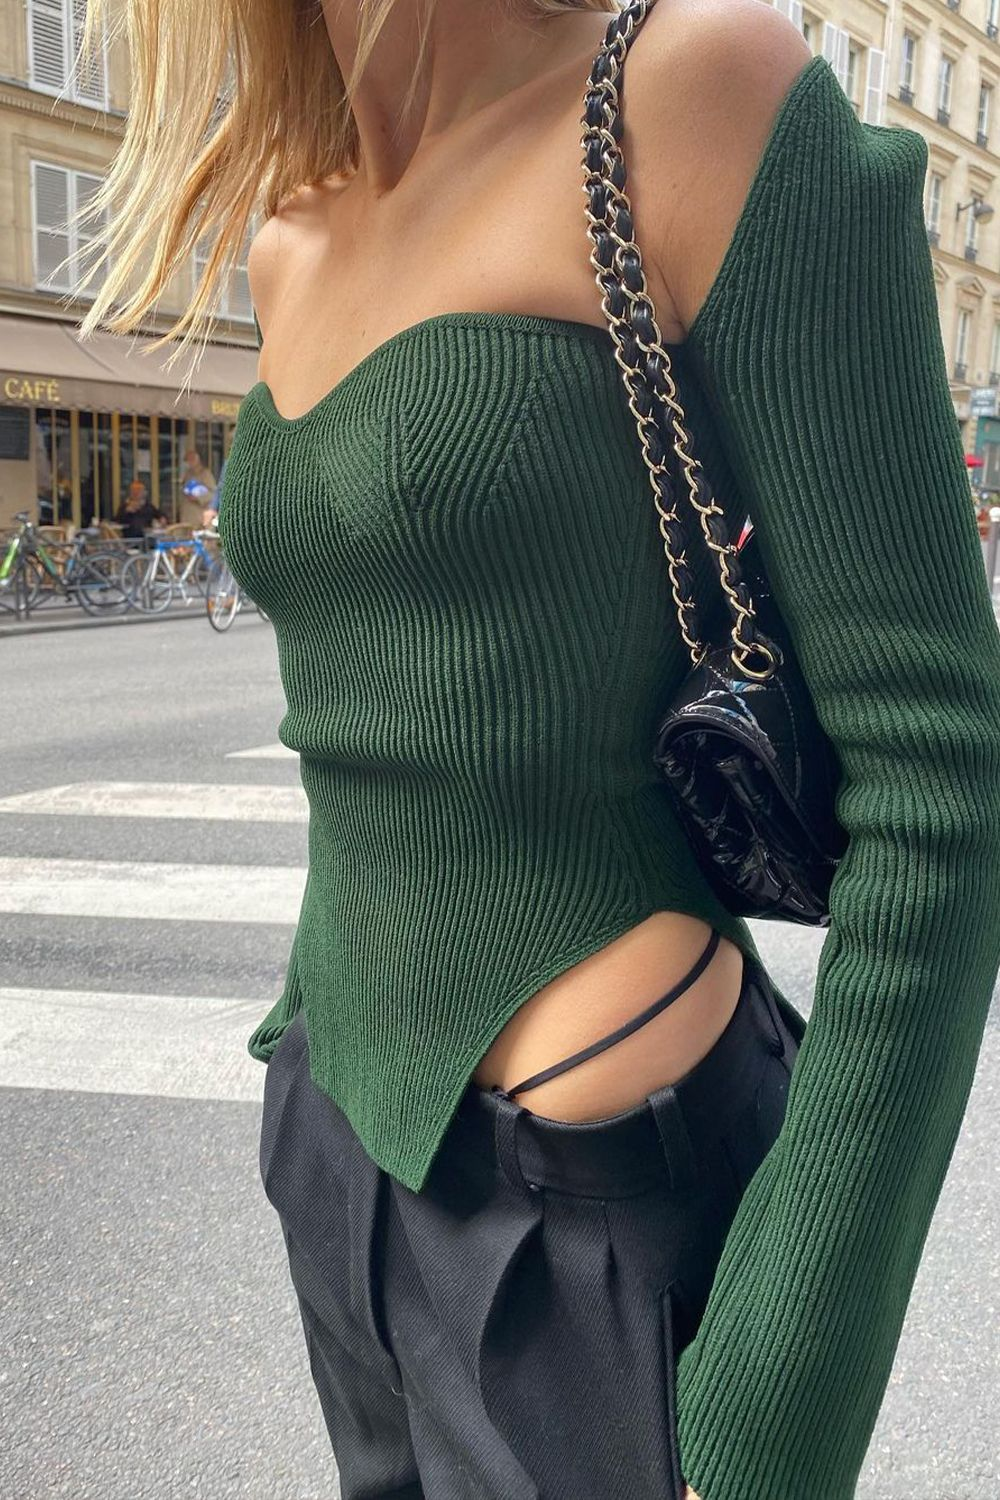 G-Strings Are Back in Fashion But Not as You Once Knew Them